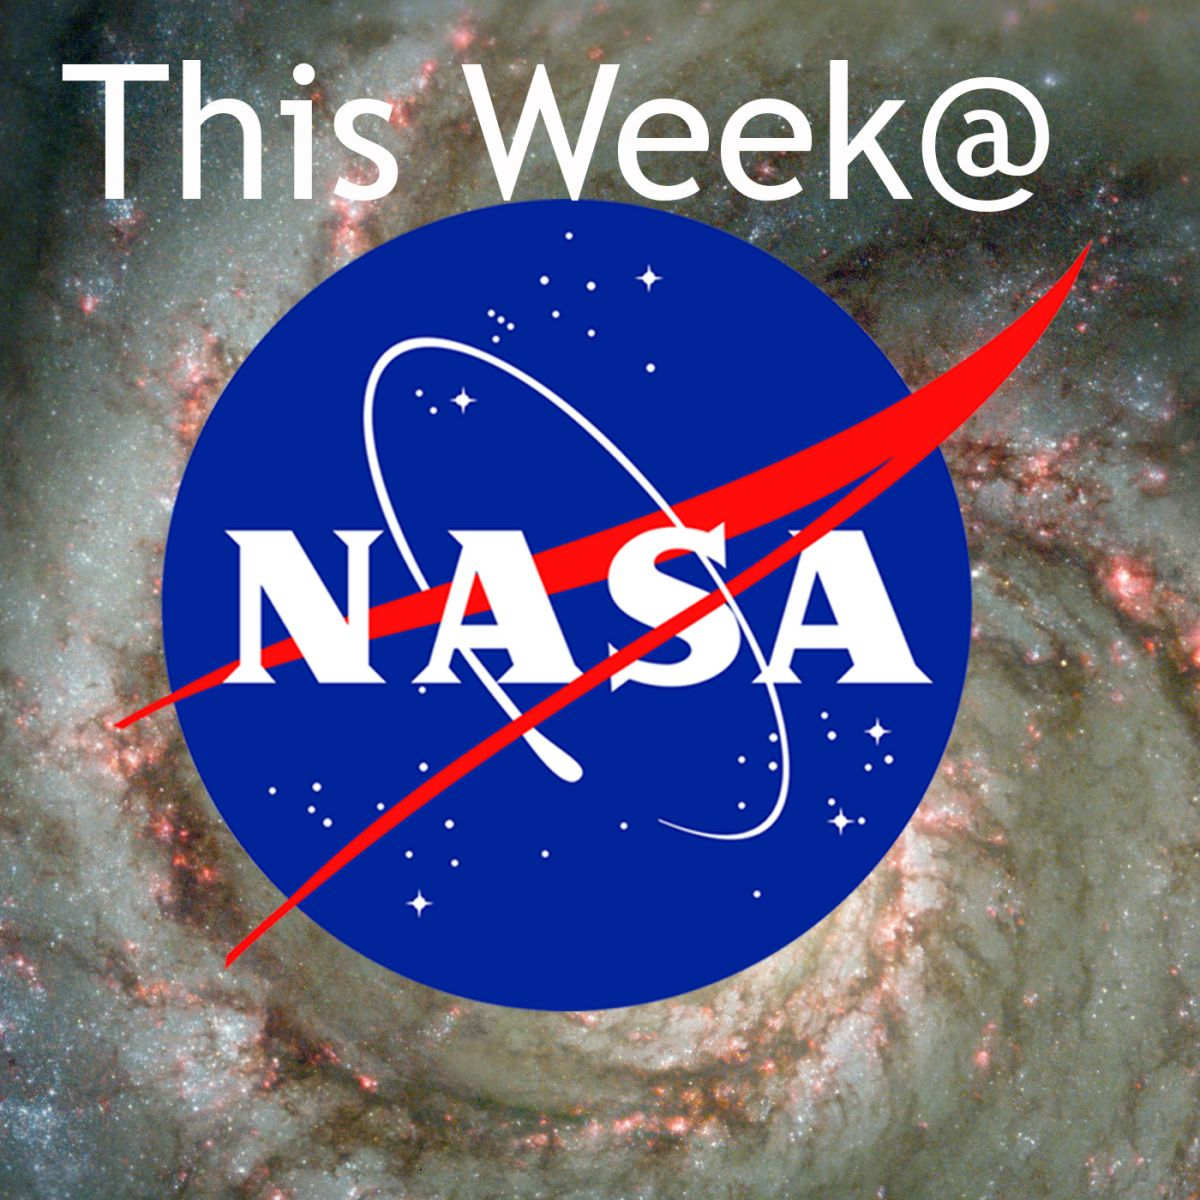 NASACast: This Week @ NASA Video